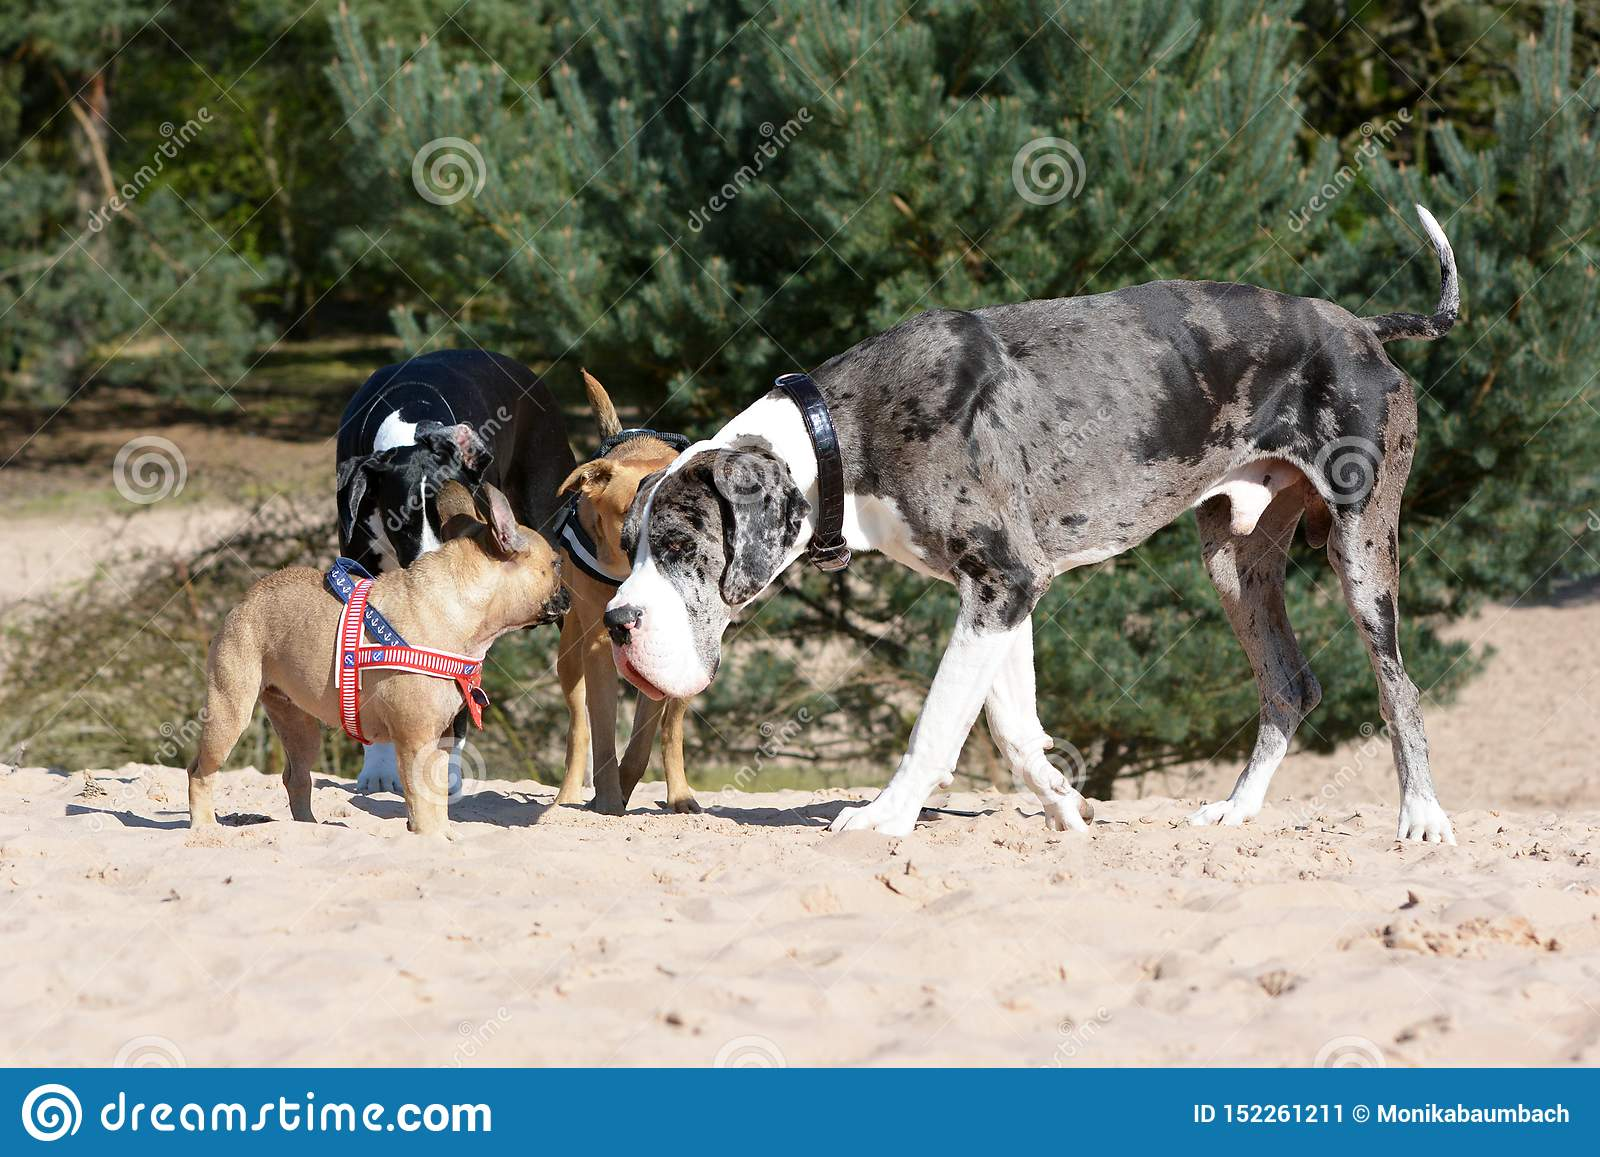 Dogs like merle colored Great Dane and small fawn French Bulldog meeting up at a dog park